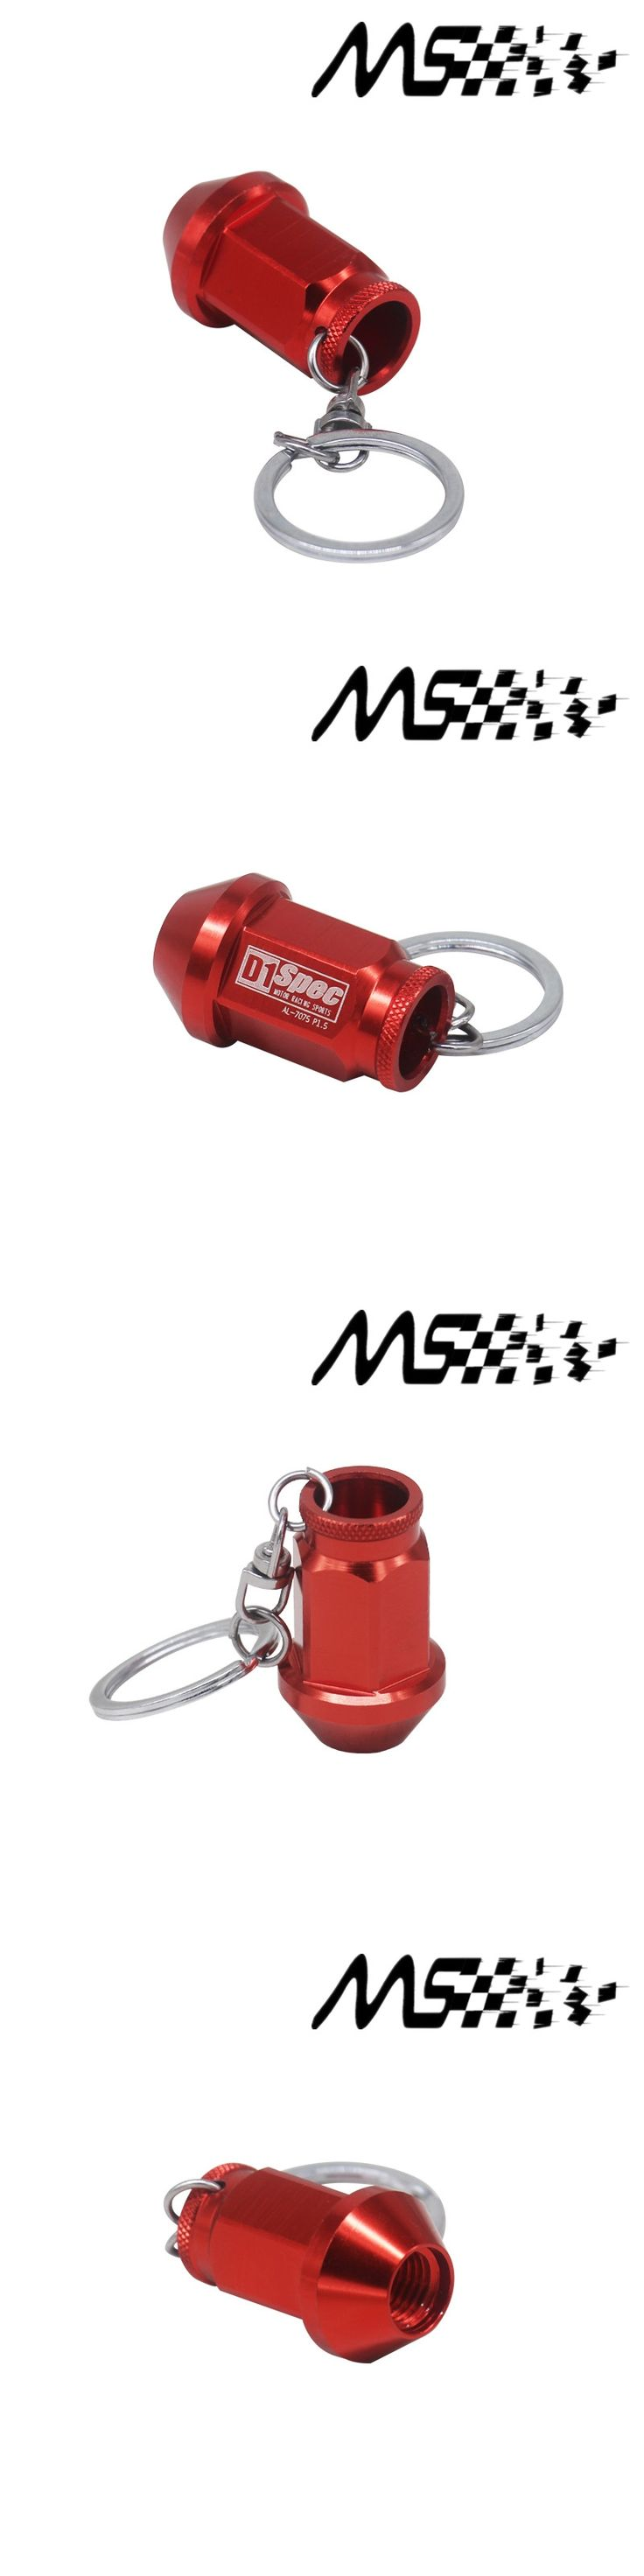 UNIVERSAL D1 SPEC Key chain JDM RACING 40MM WHEEL LUG NUTS Auto Car King Rings styling Car-covers Accessories Alloys Key Ring